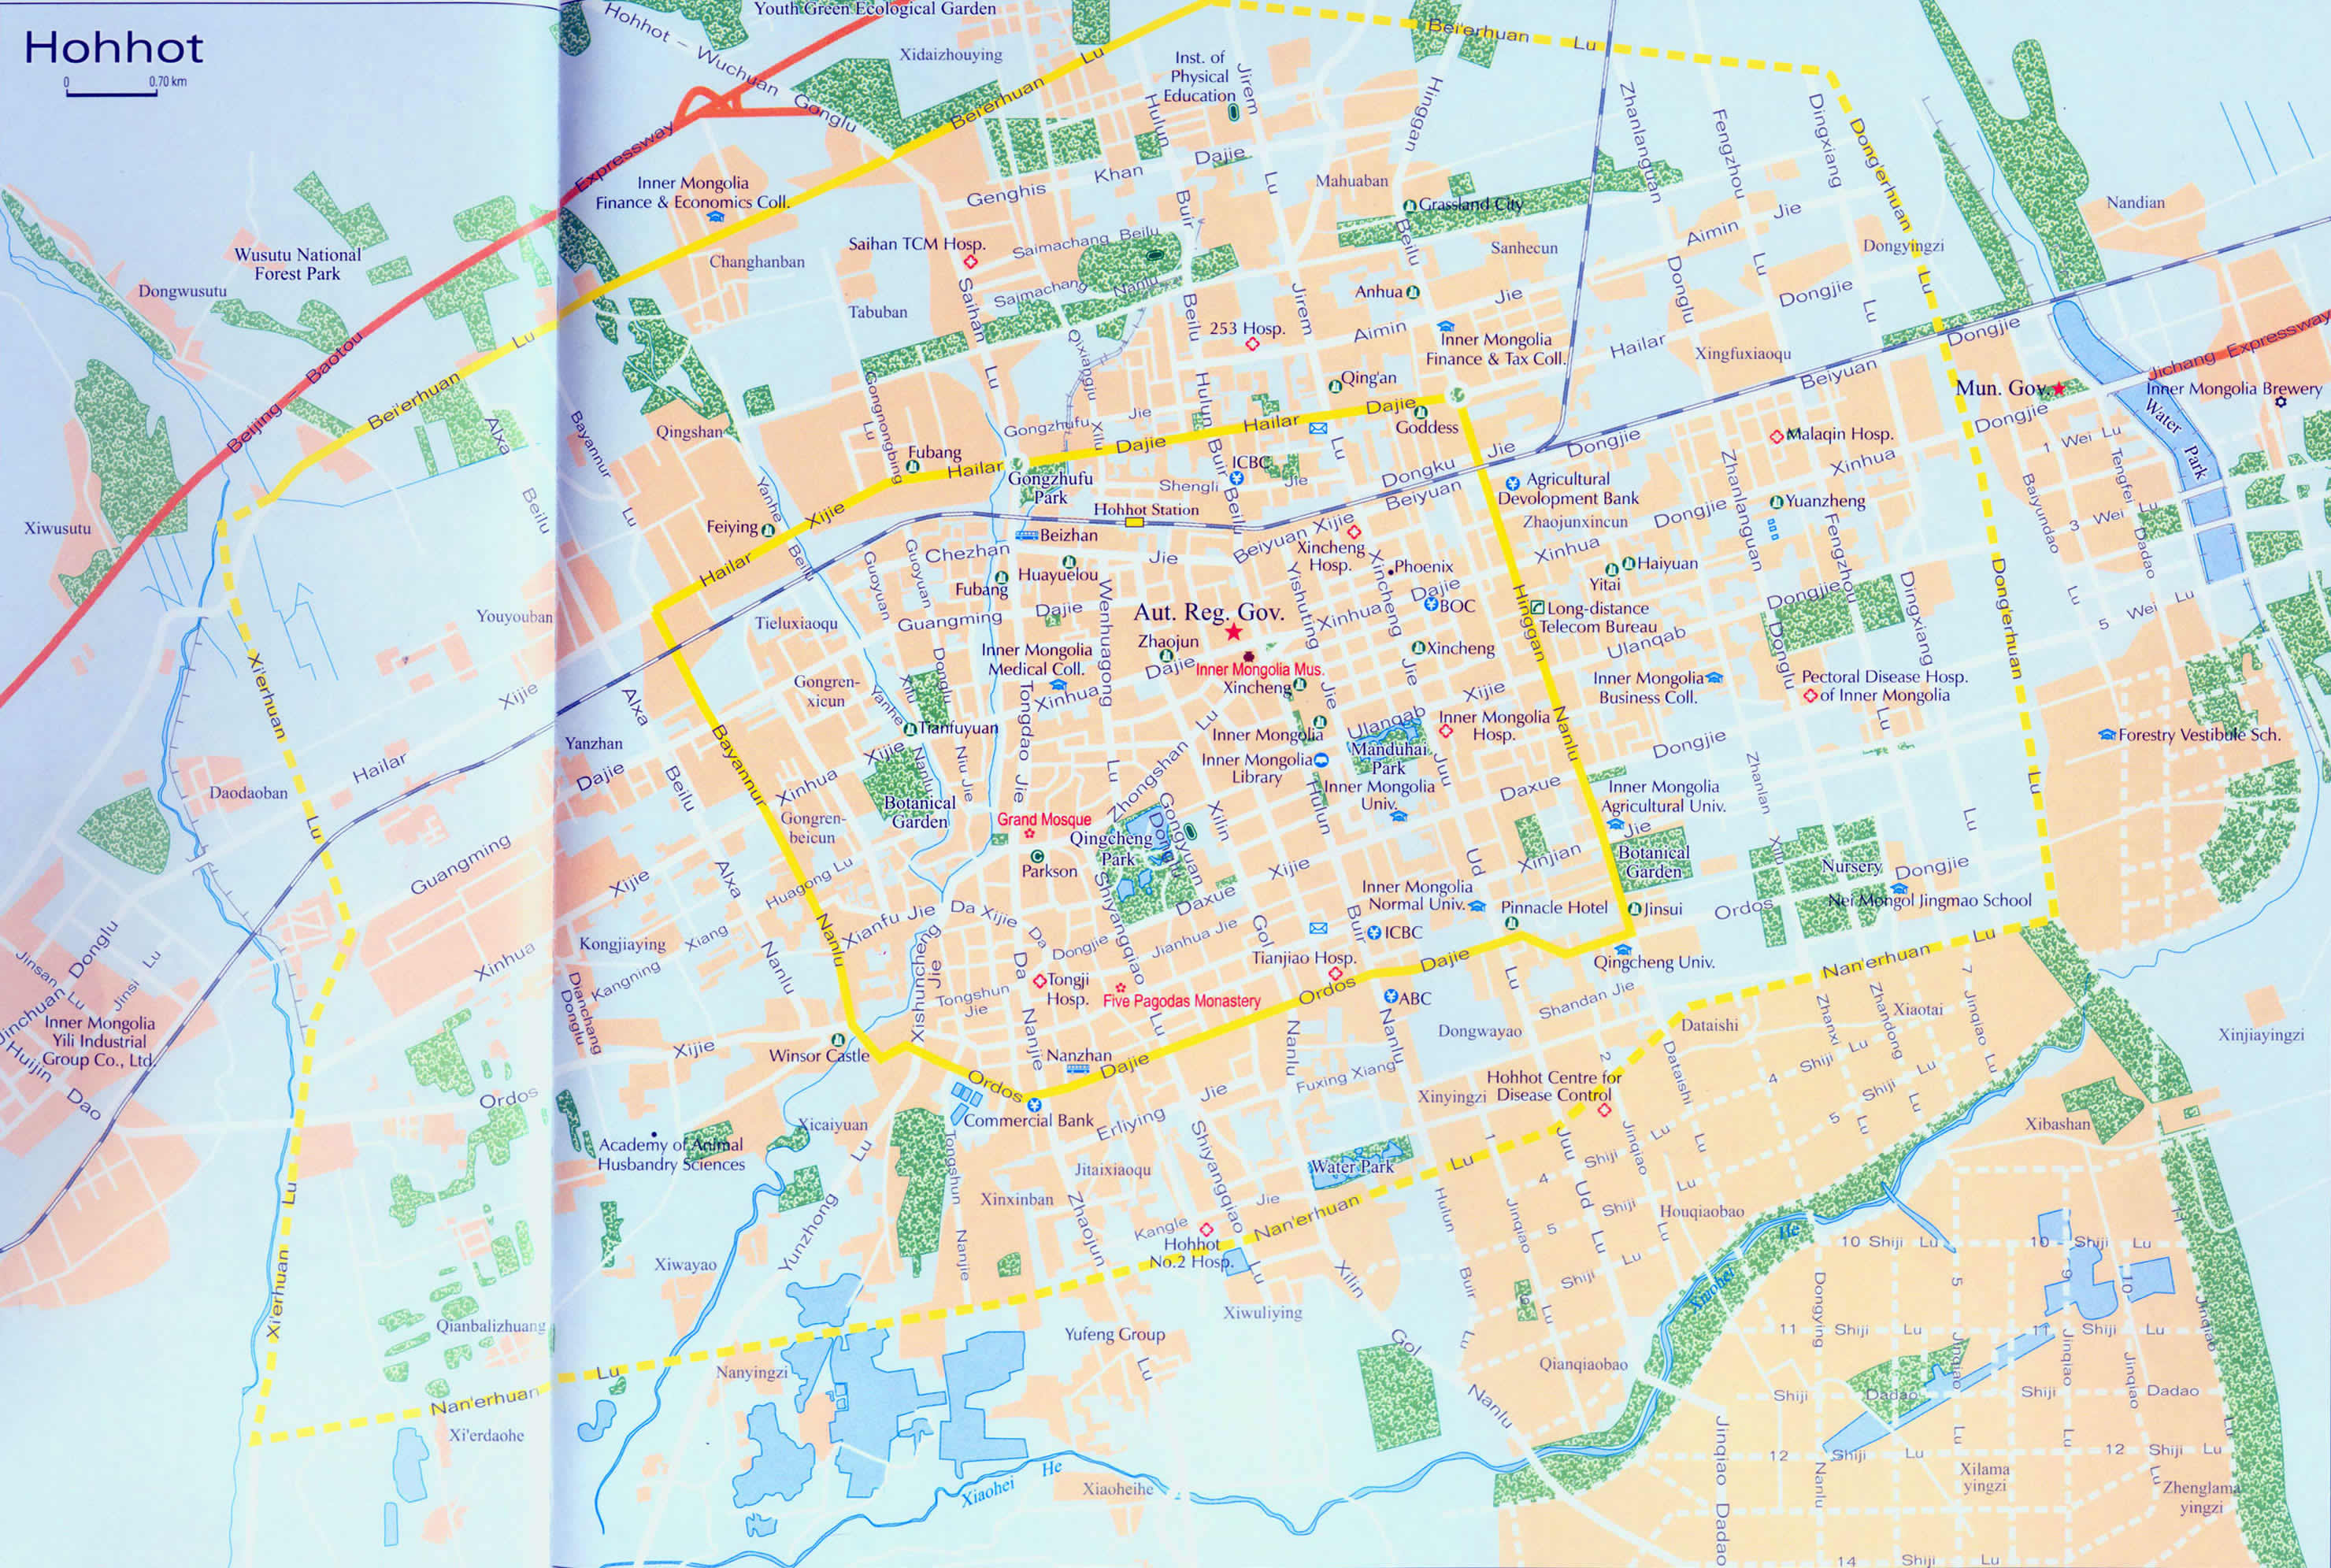 Abc Traffic Map.Detailed Hohhot Traffic Map Map Of Hohhot Hohhot Tour Tours In